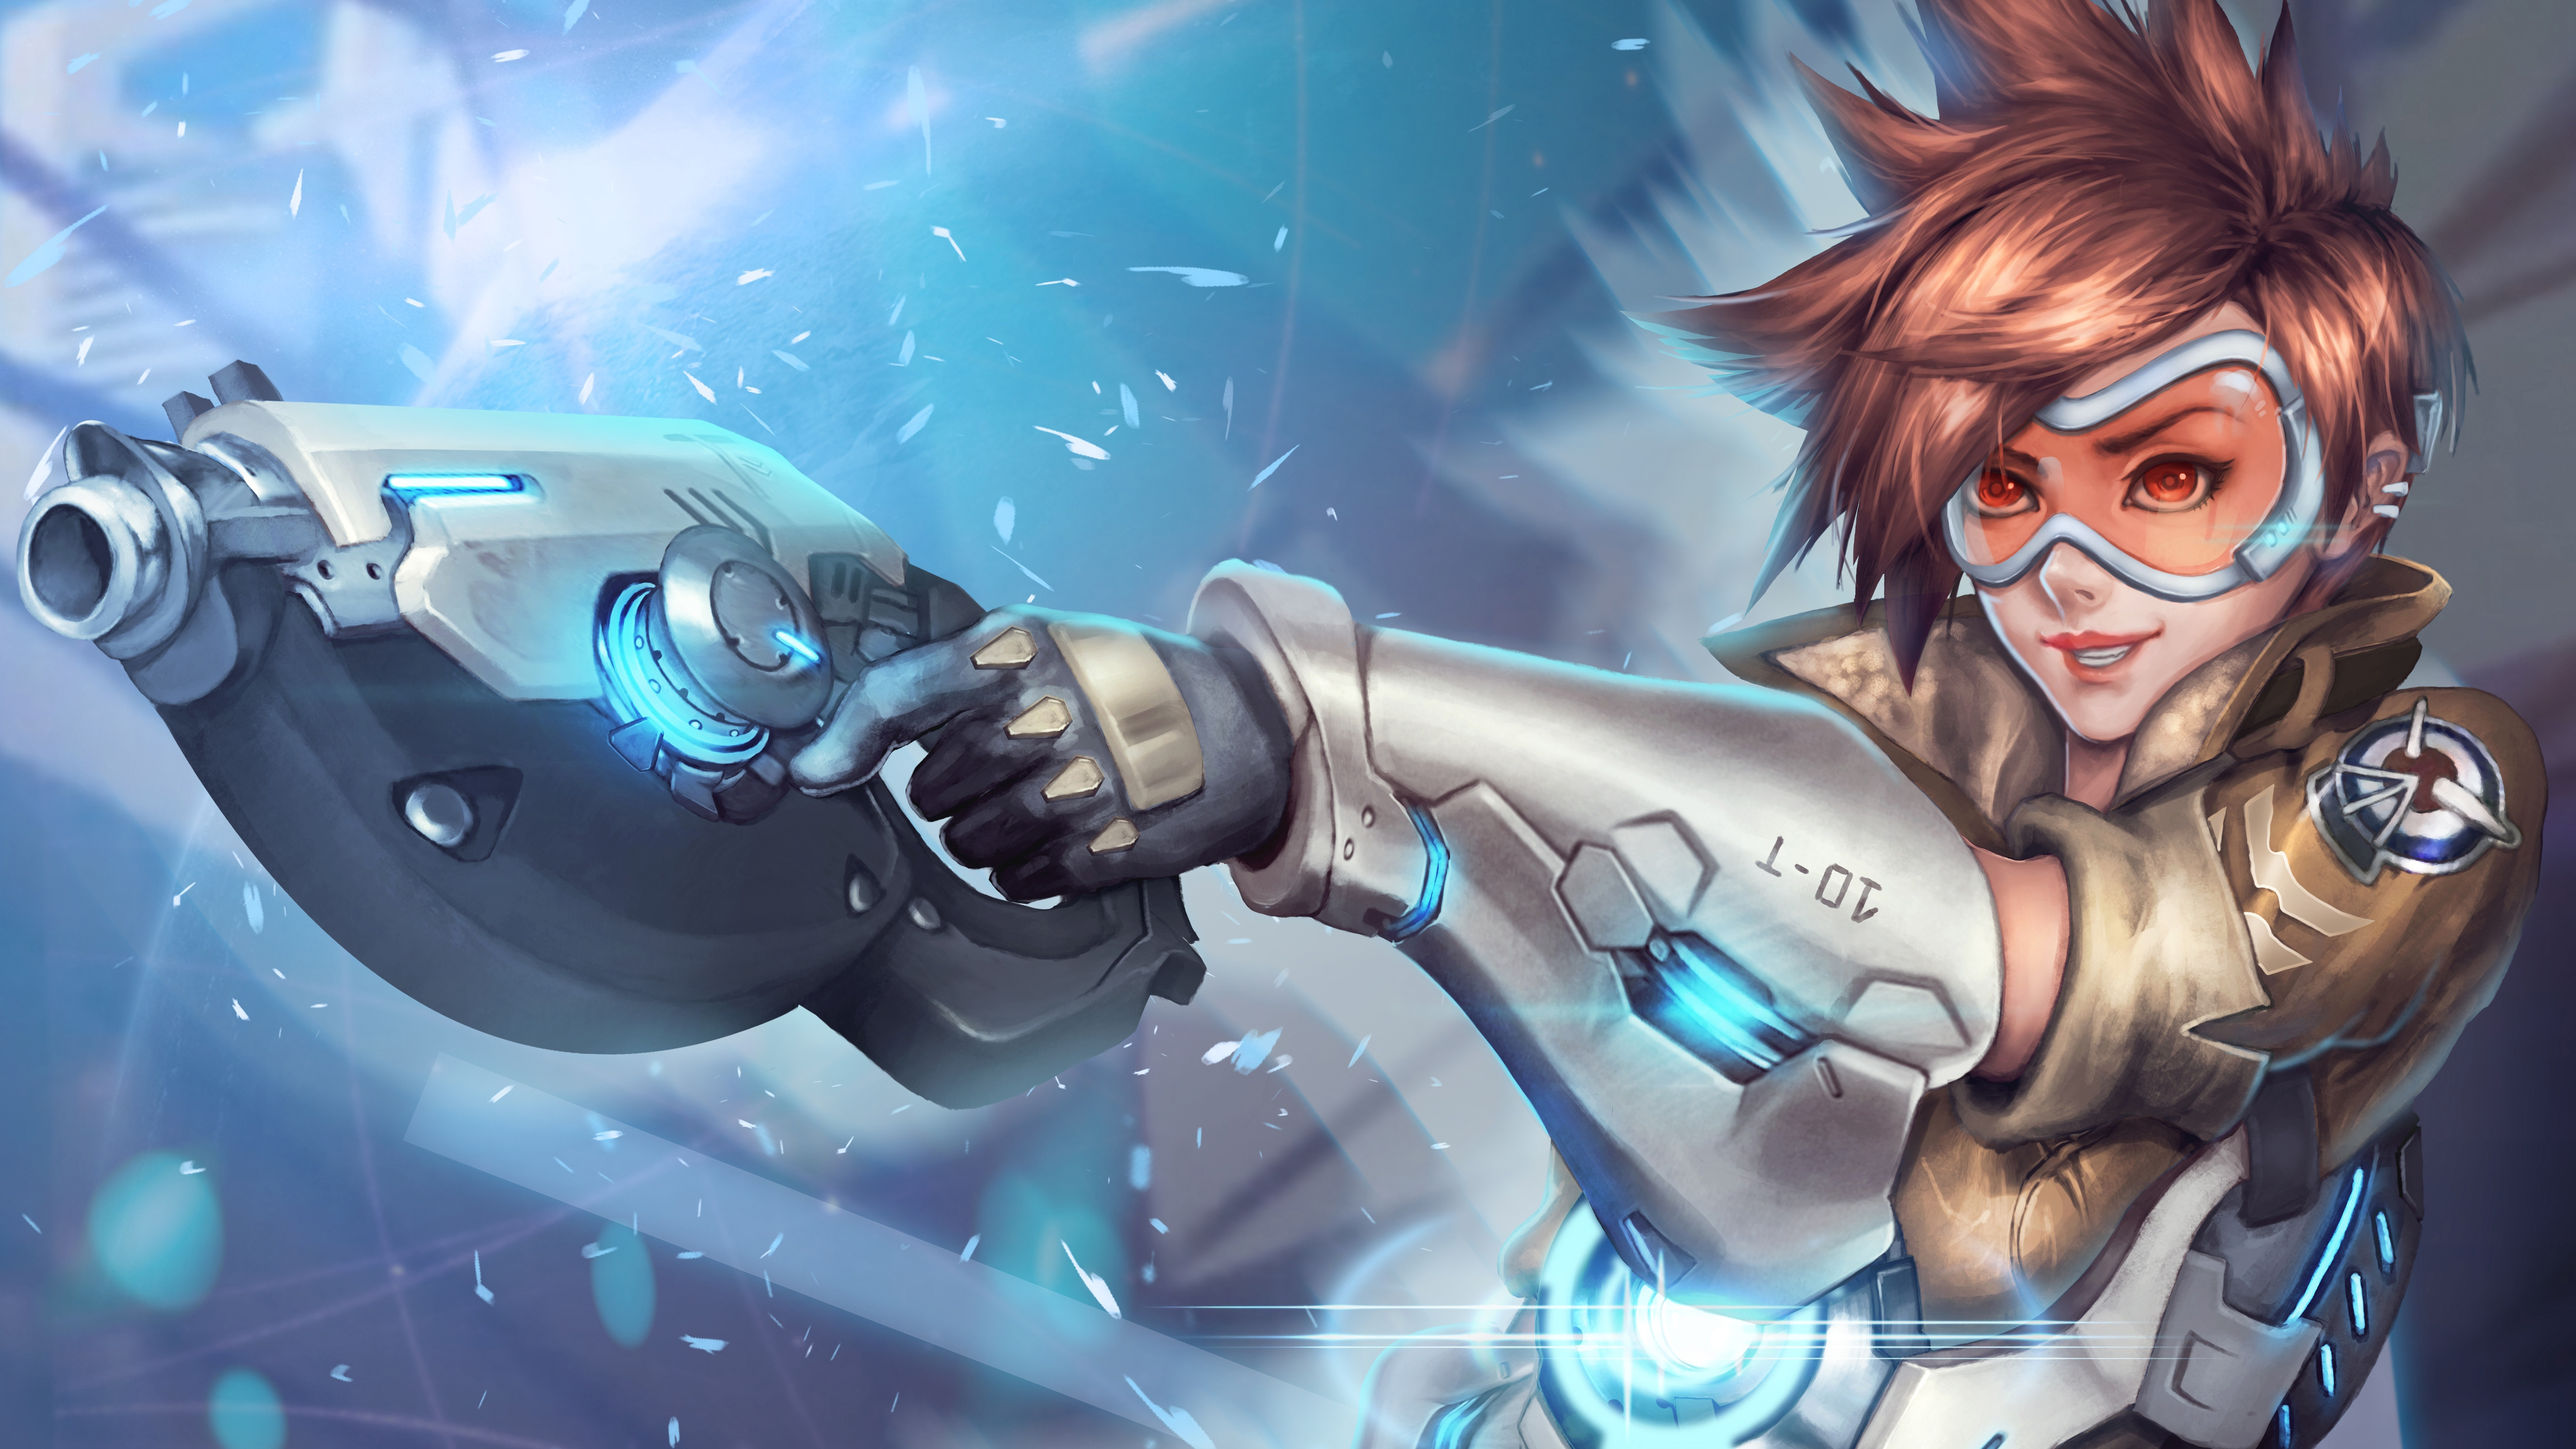 Tracer Overwatch Wallpaper Overwatch Wallpaper Tracer 4k